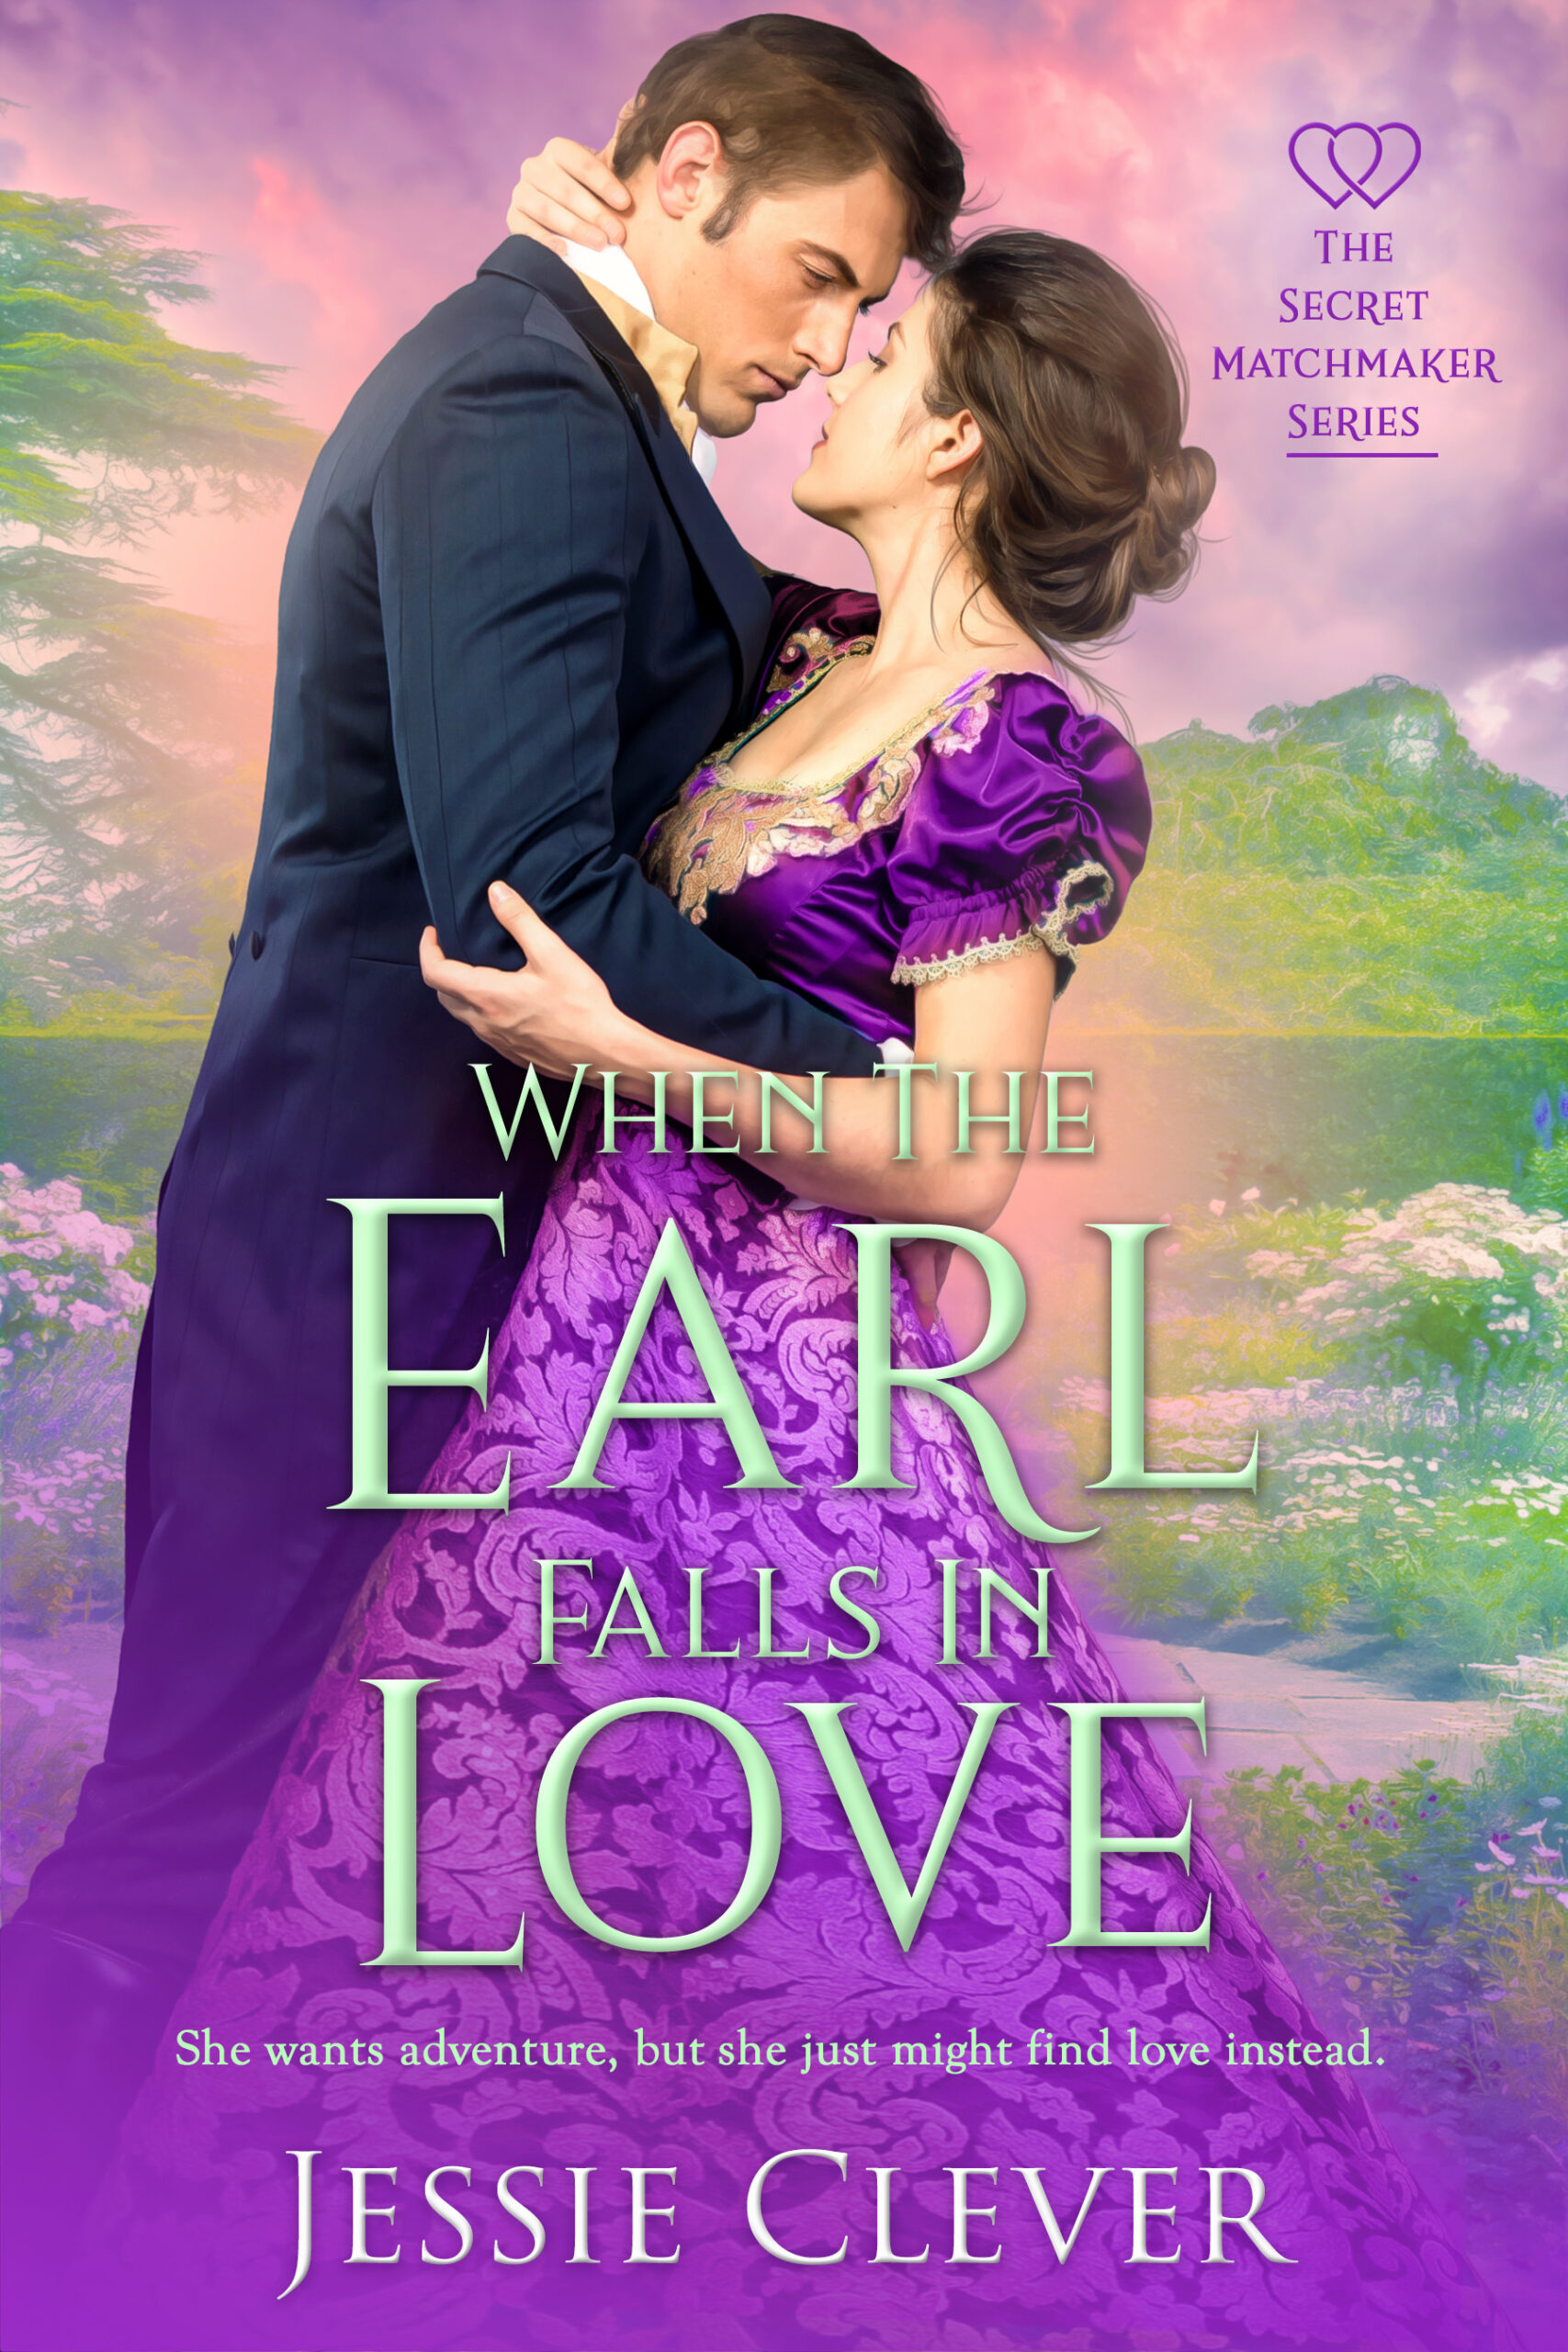 Enjoy an Excerpt from When the Earl Falls in Love